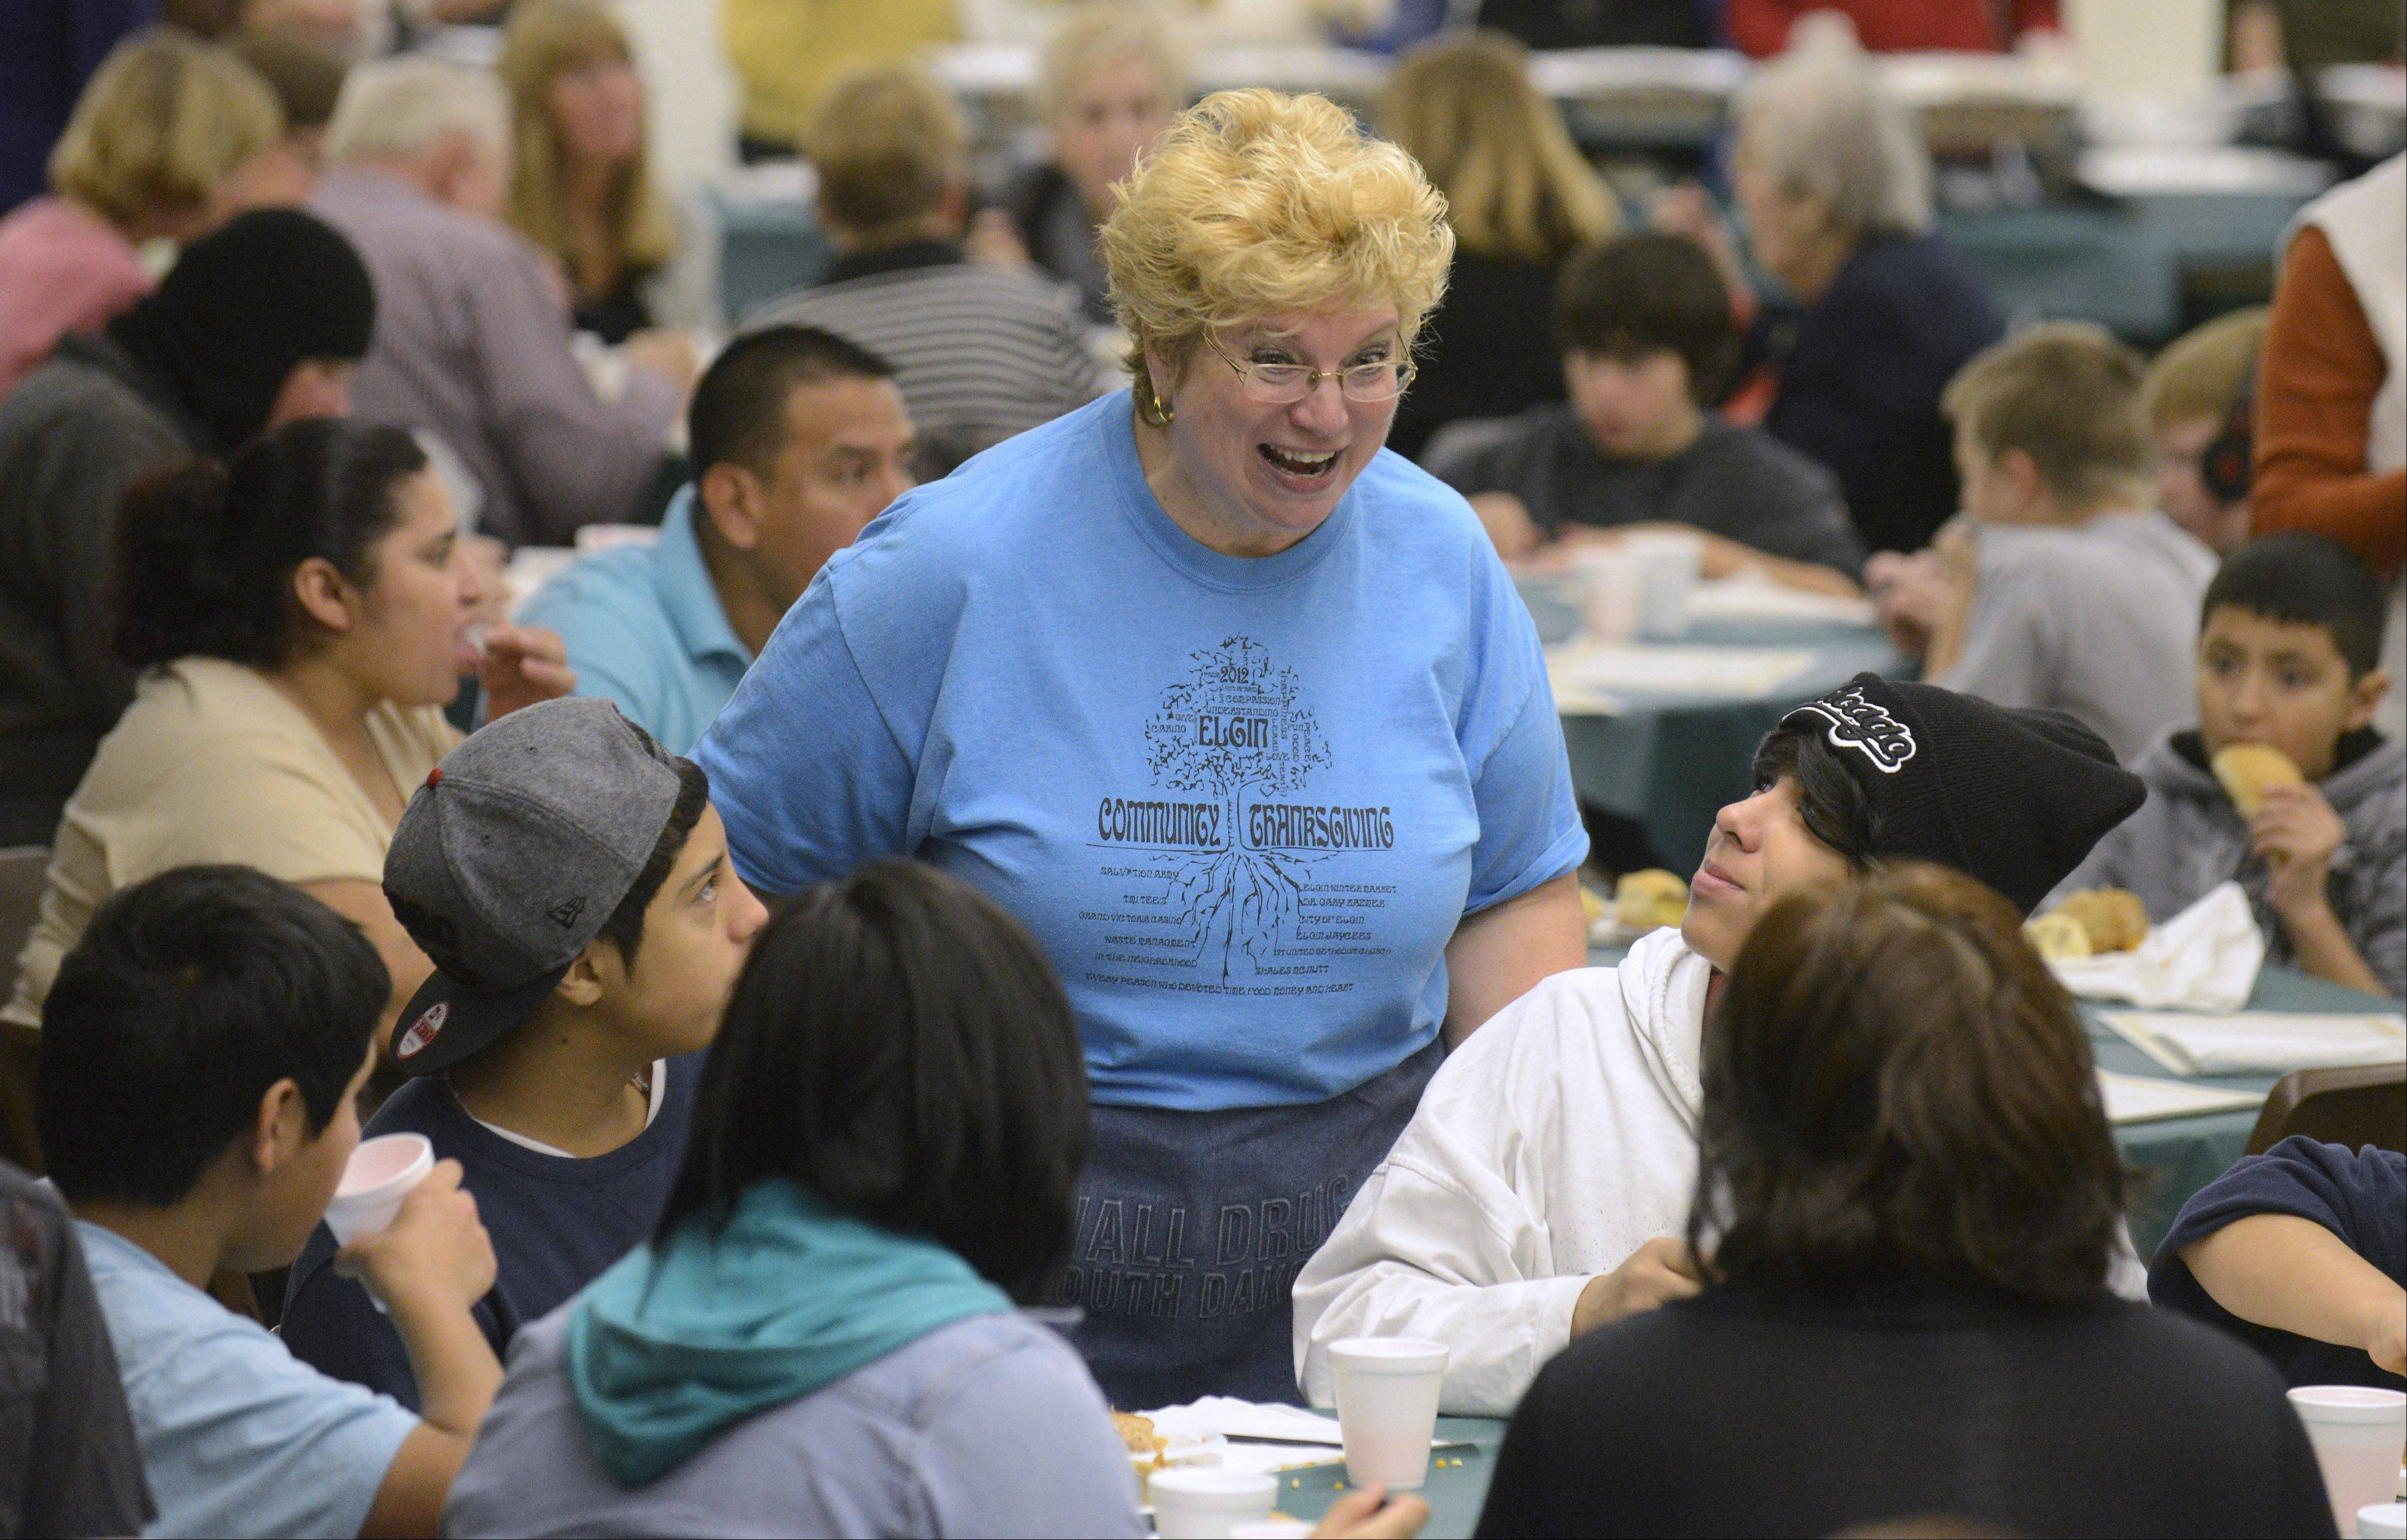 Elgin's Diane Fraser chats with diners at the Elgin Community Thanksgiving Dinner on Thanksgiving.